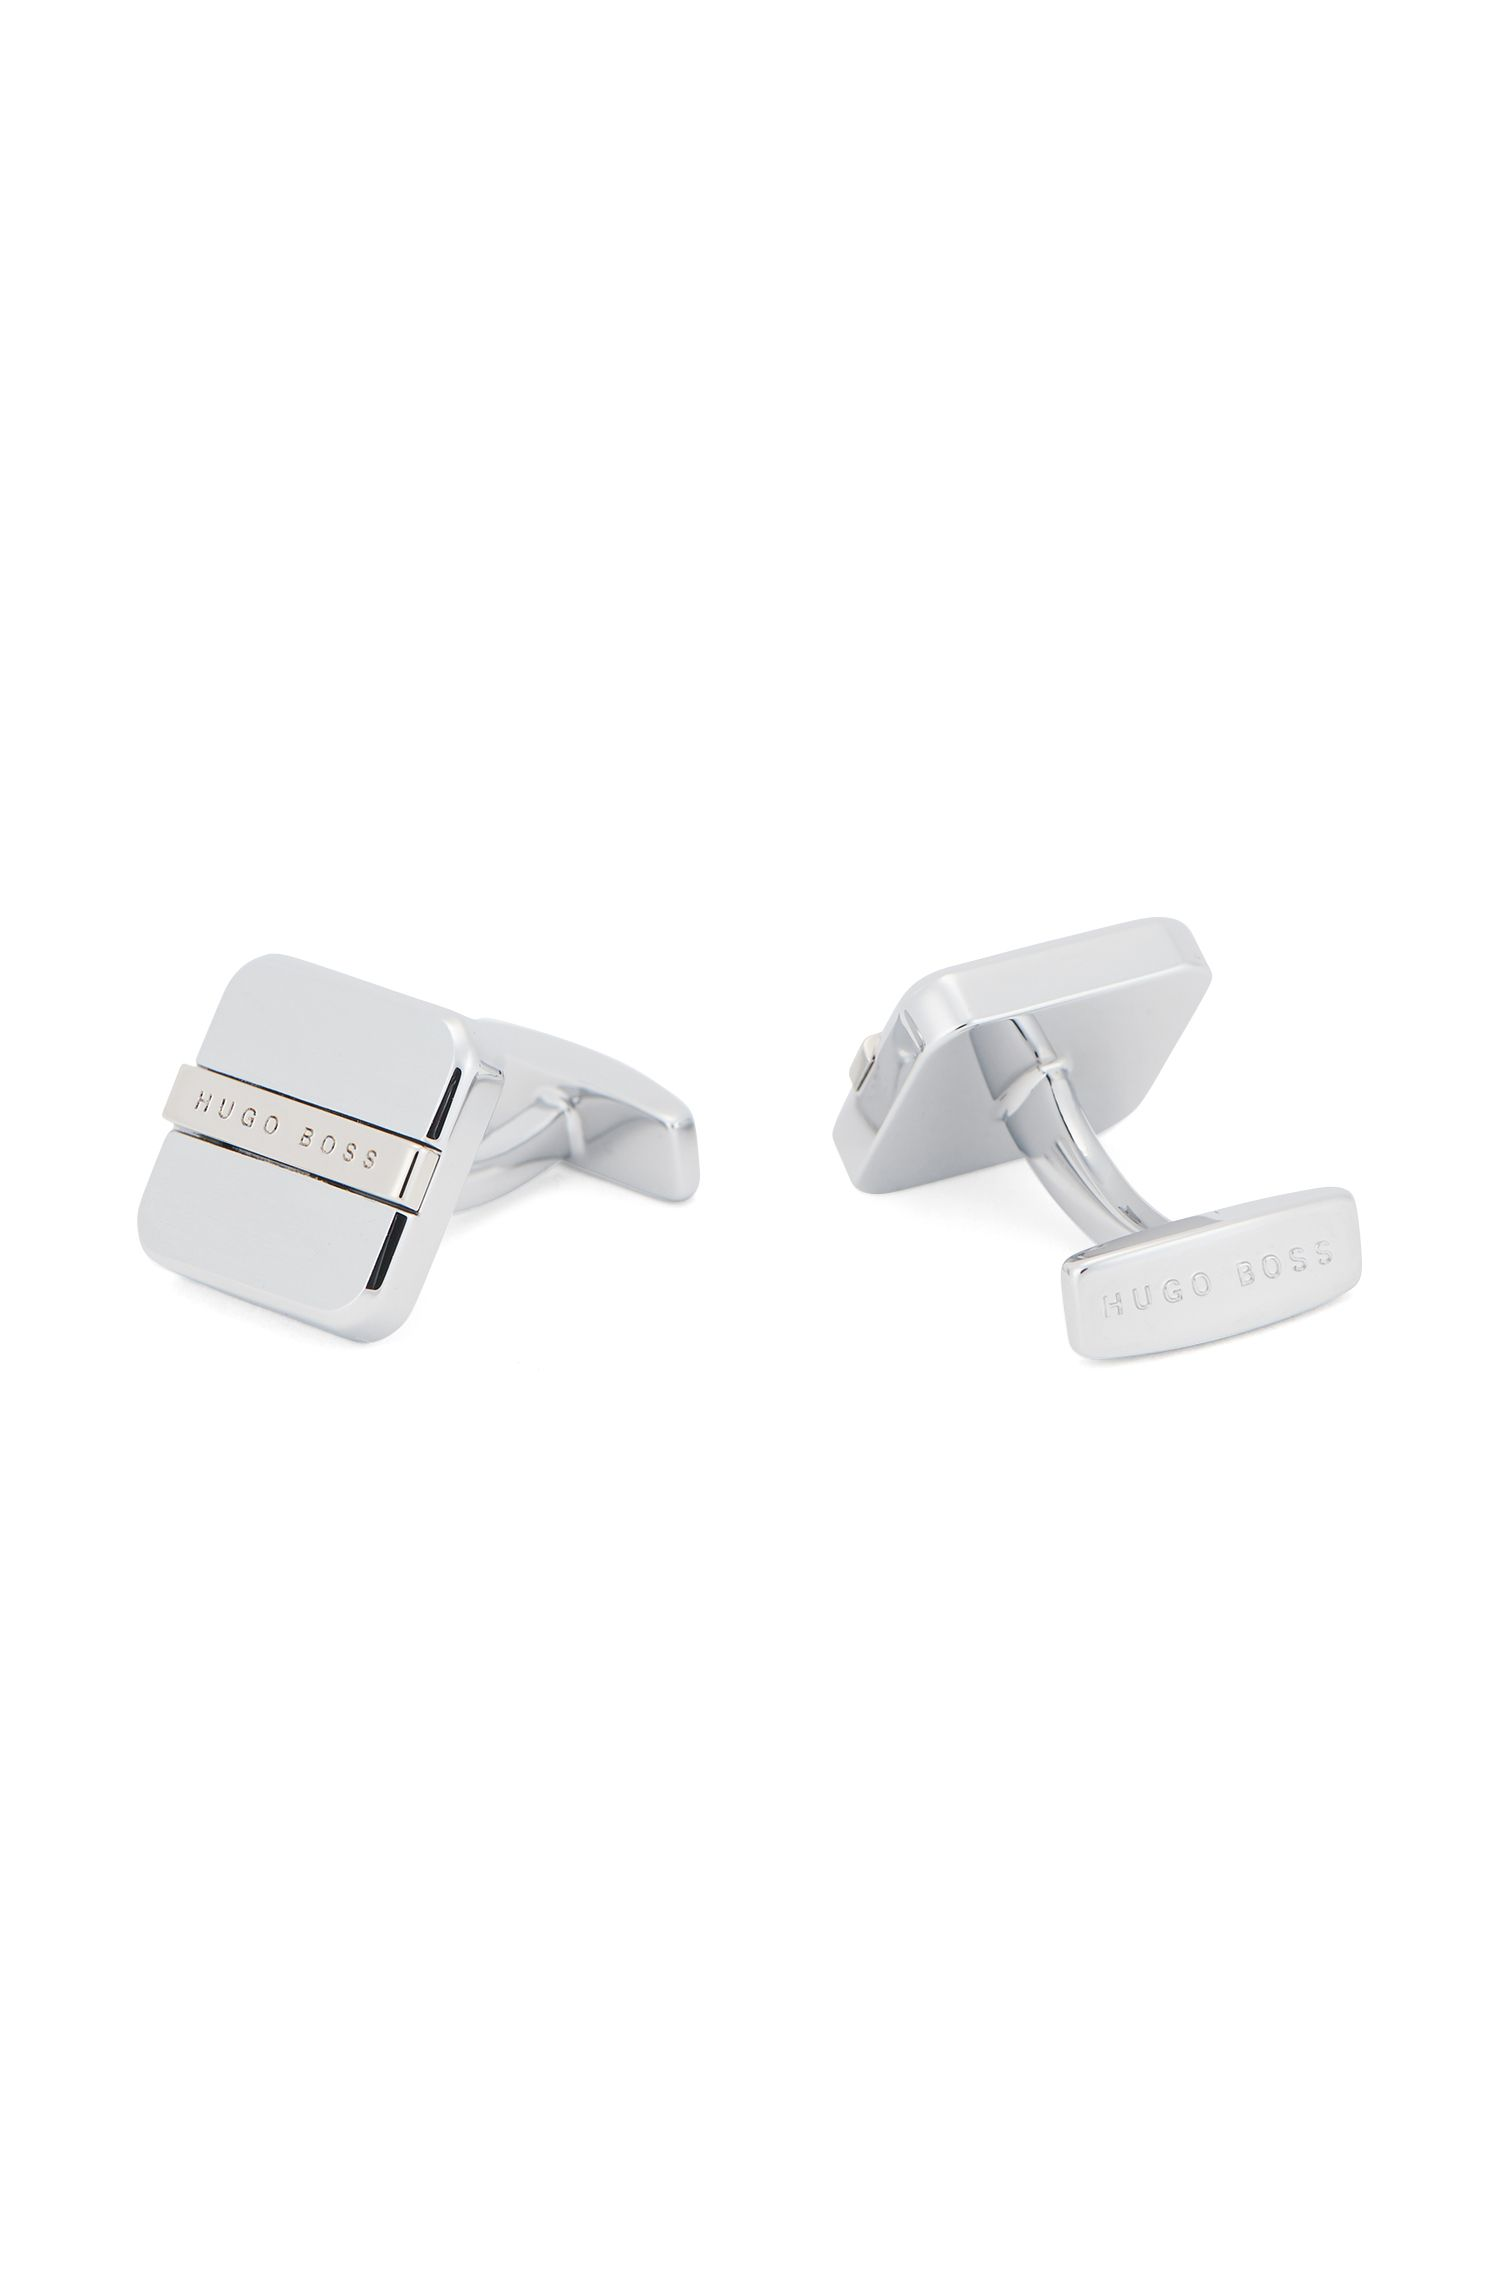 Square cufflinks with soft edges and engraved logo